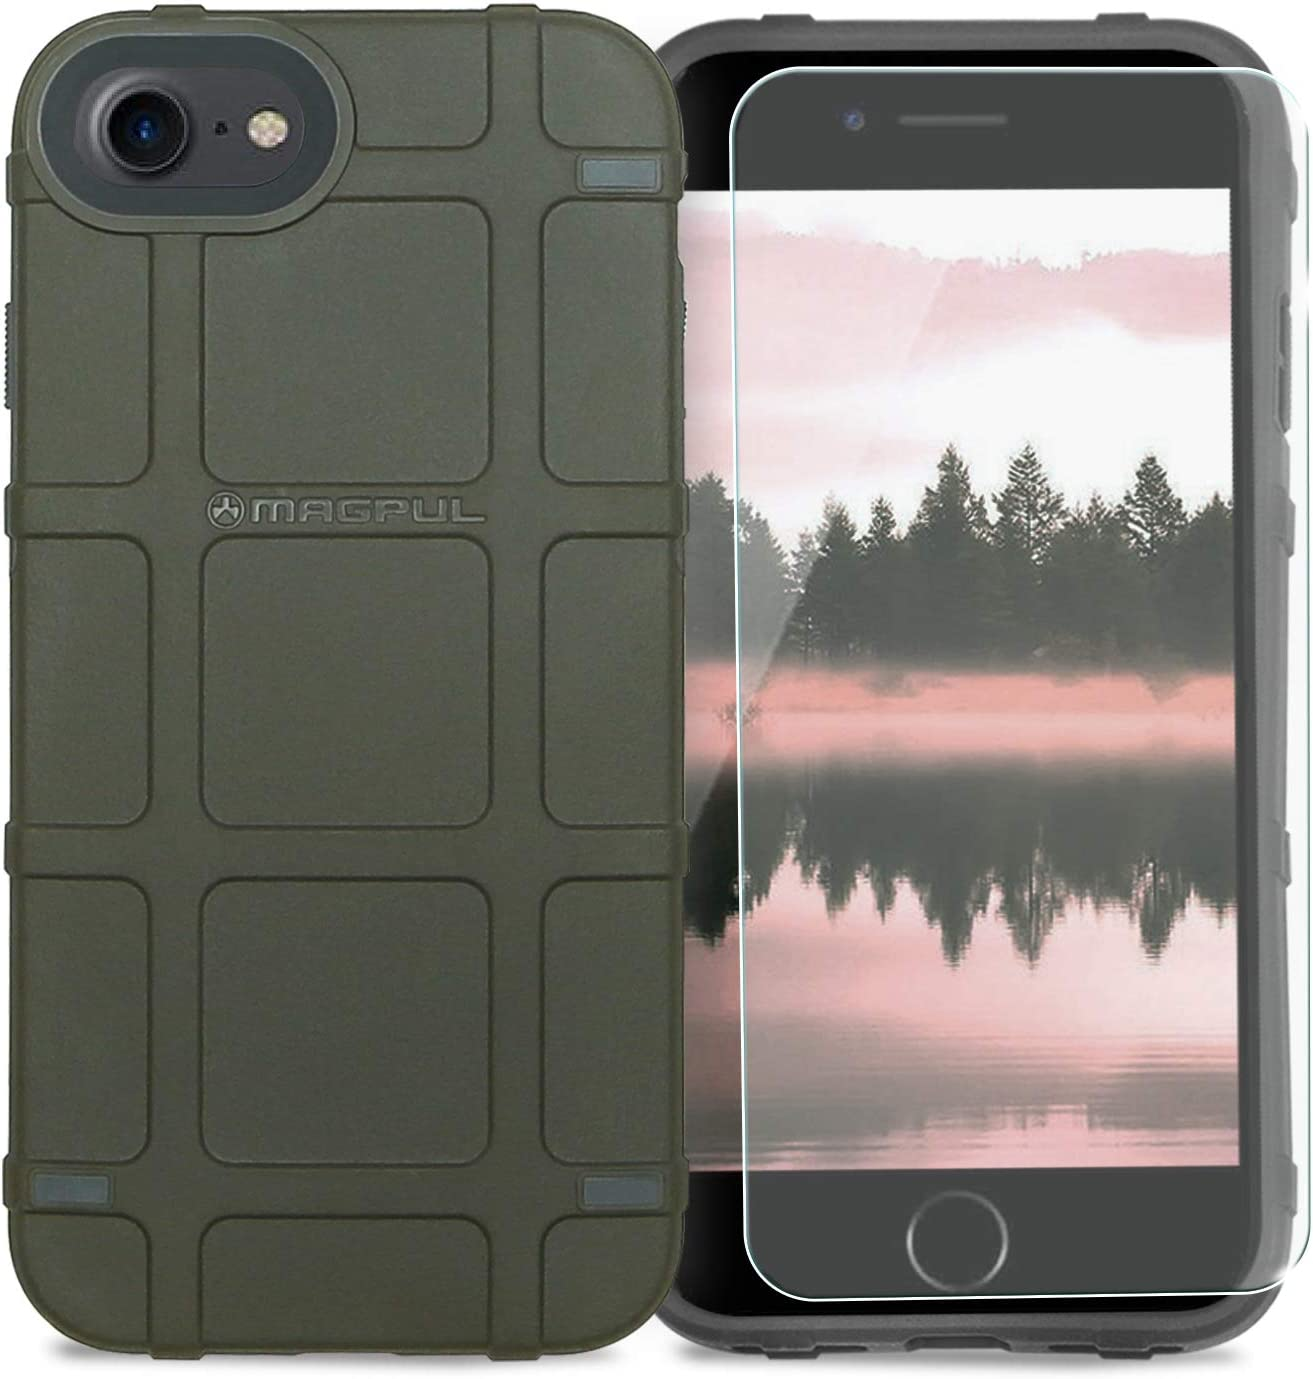 """Phone Case Compatible with Apple iPhone 7/iPhone 8/iPhone SE 2nd Gen (iPhone SE 2020) 4.7"""" inch [TJS Tempered Glass Screen Protector] Magpul Industries Bump MAG989-ODG Polymer (Olive Drab Green)"""